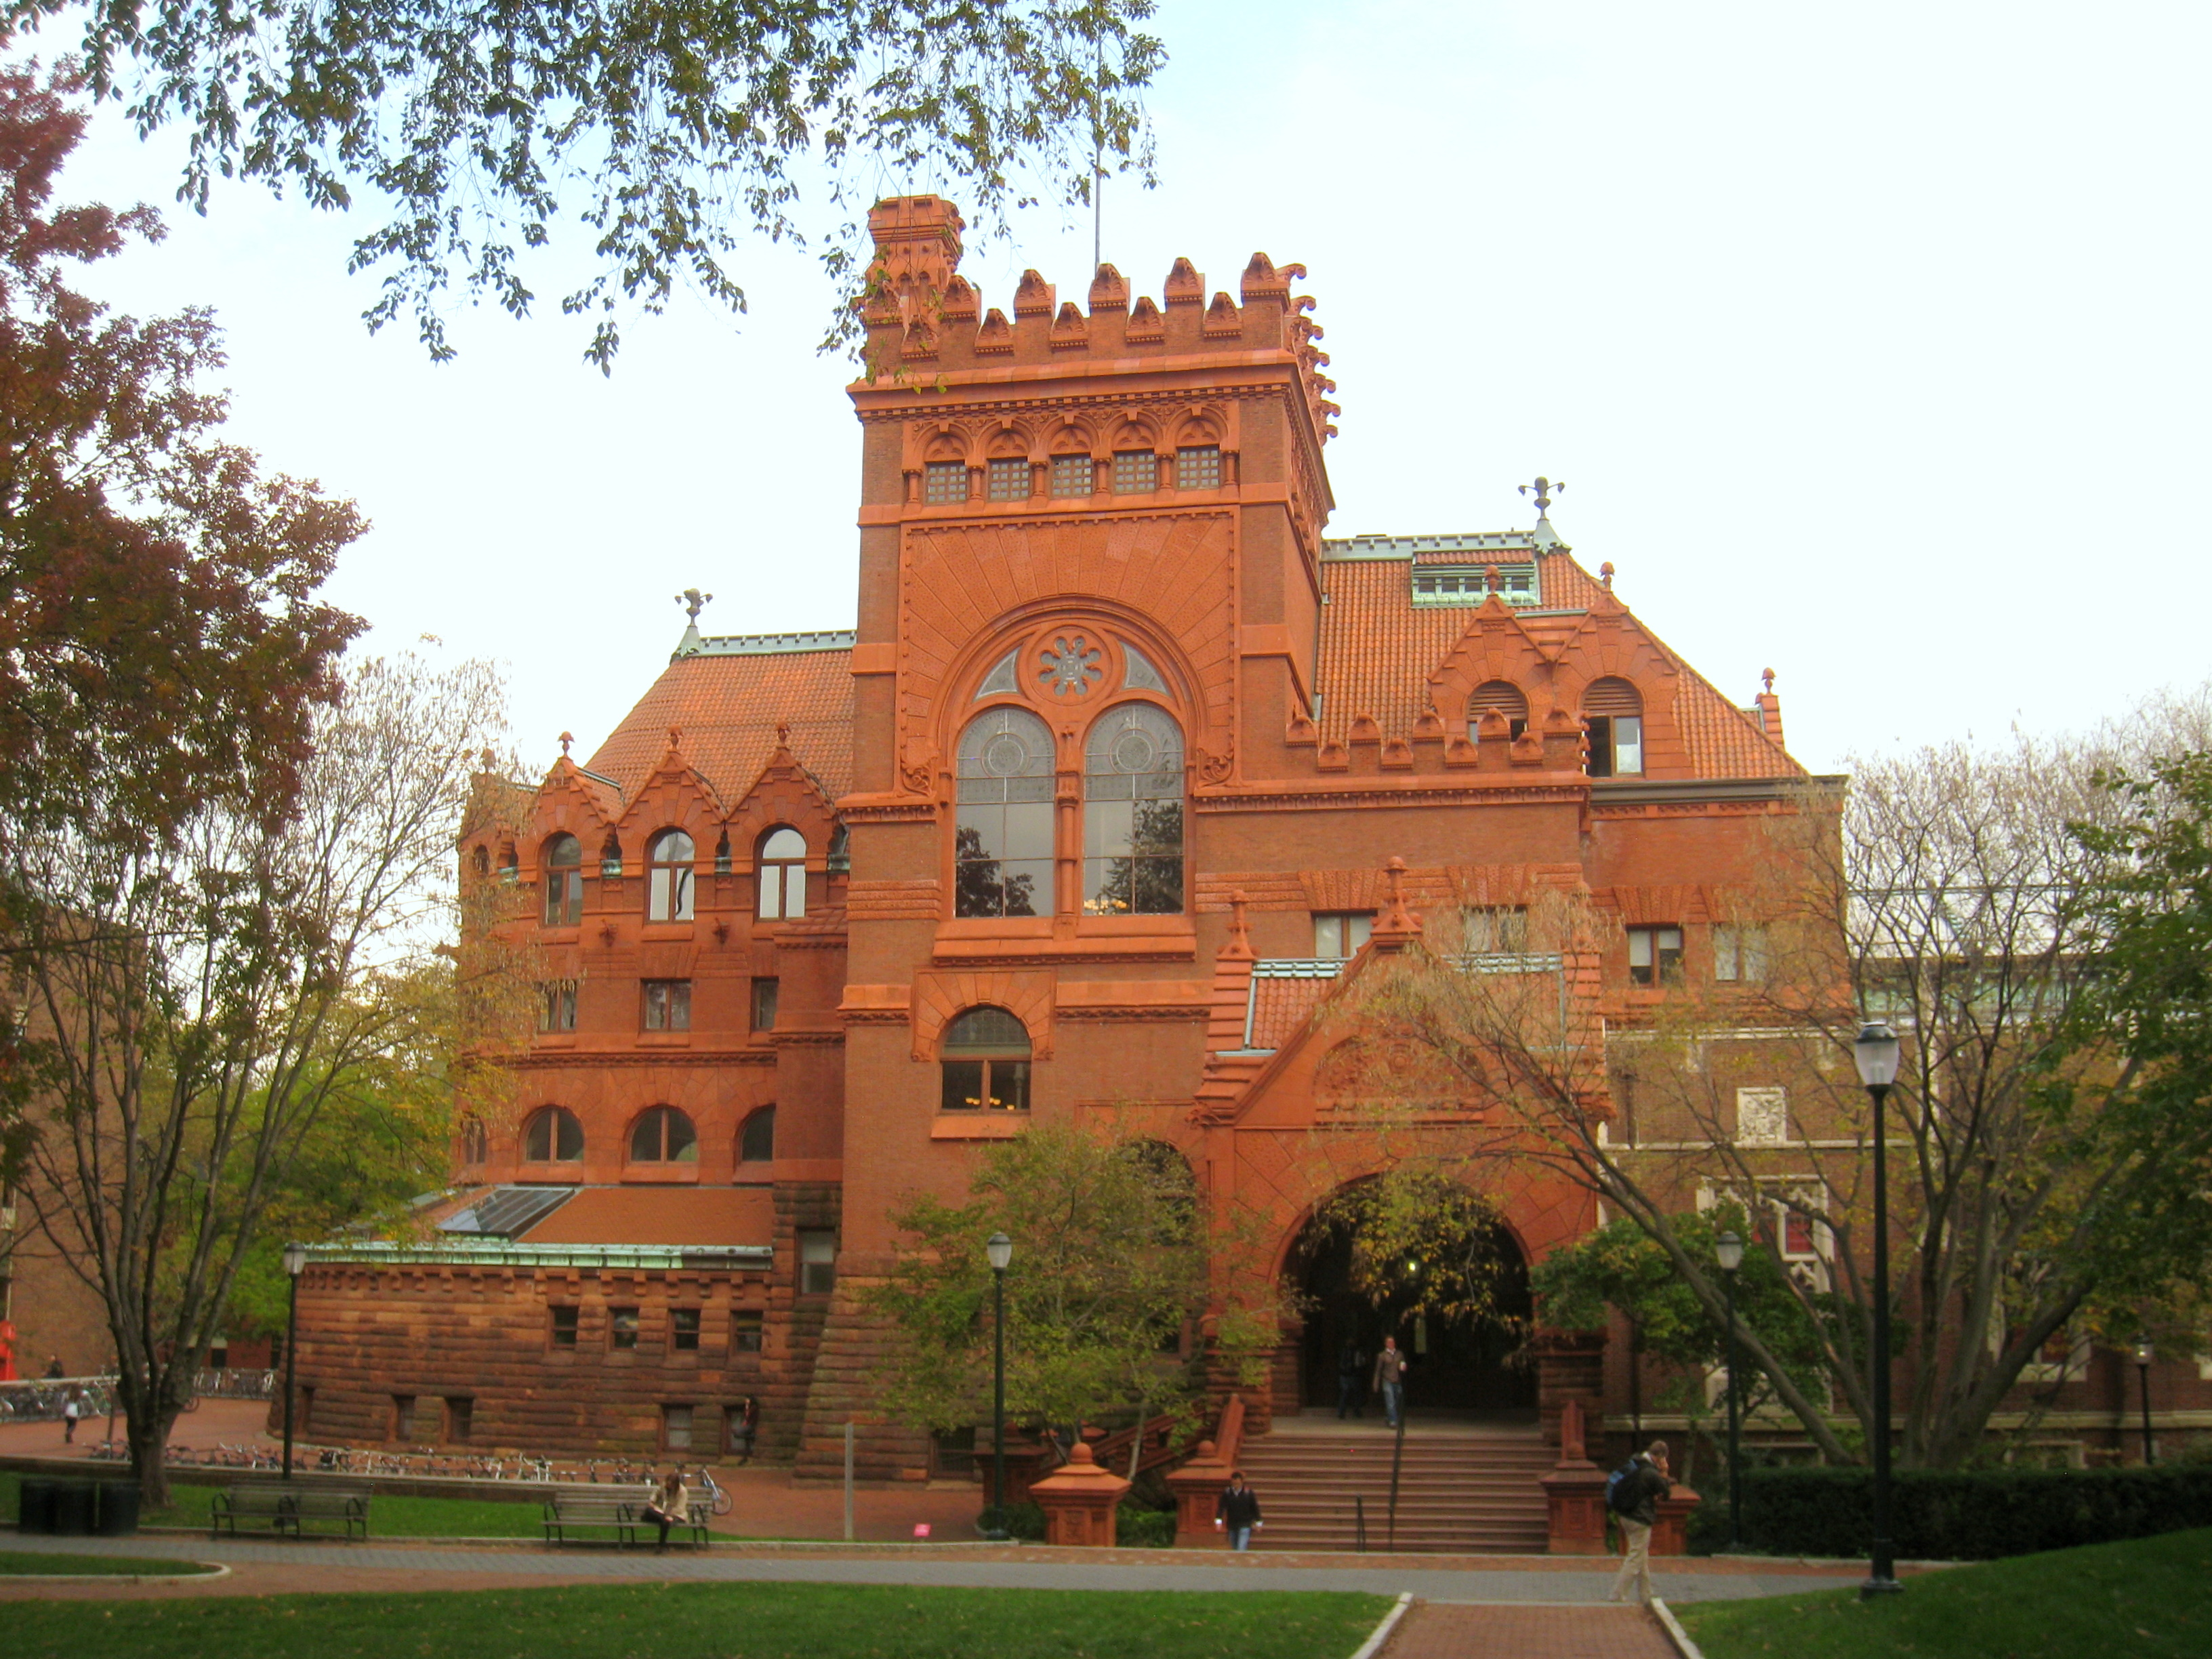 The Fisher Fine Arts Library.